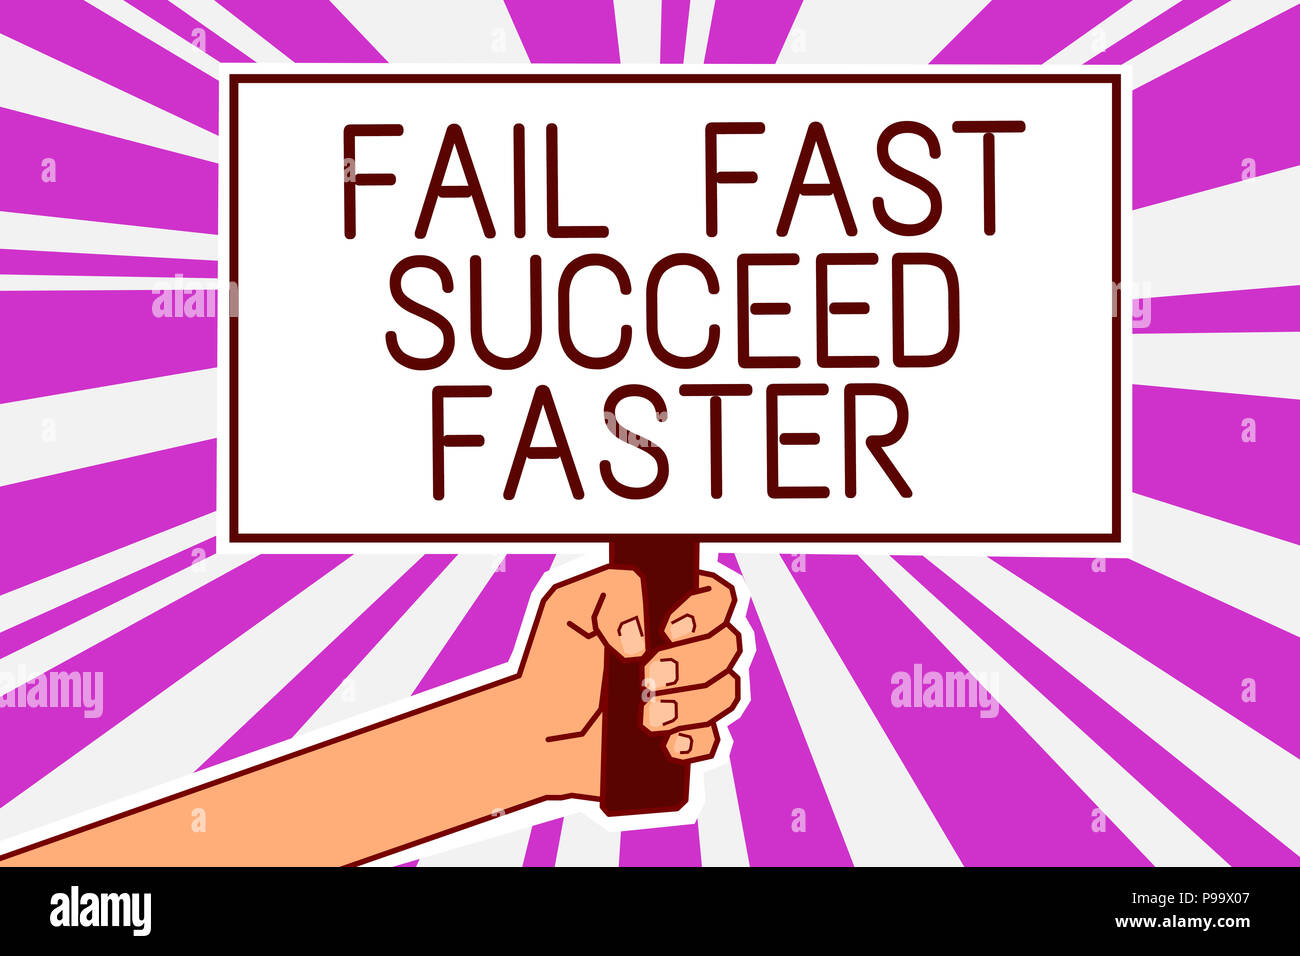 fail faster poster